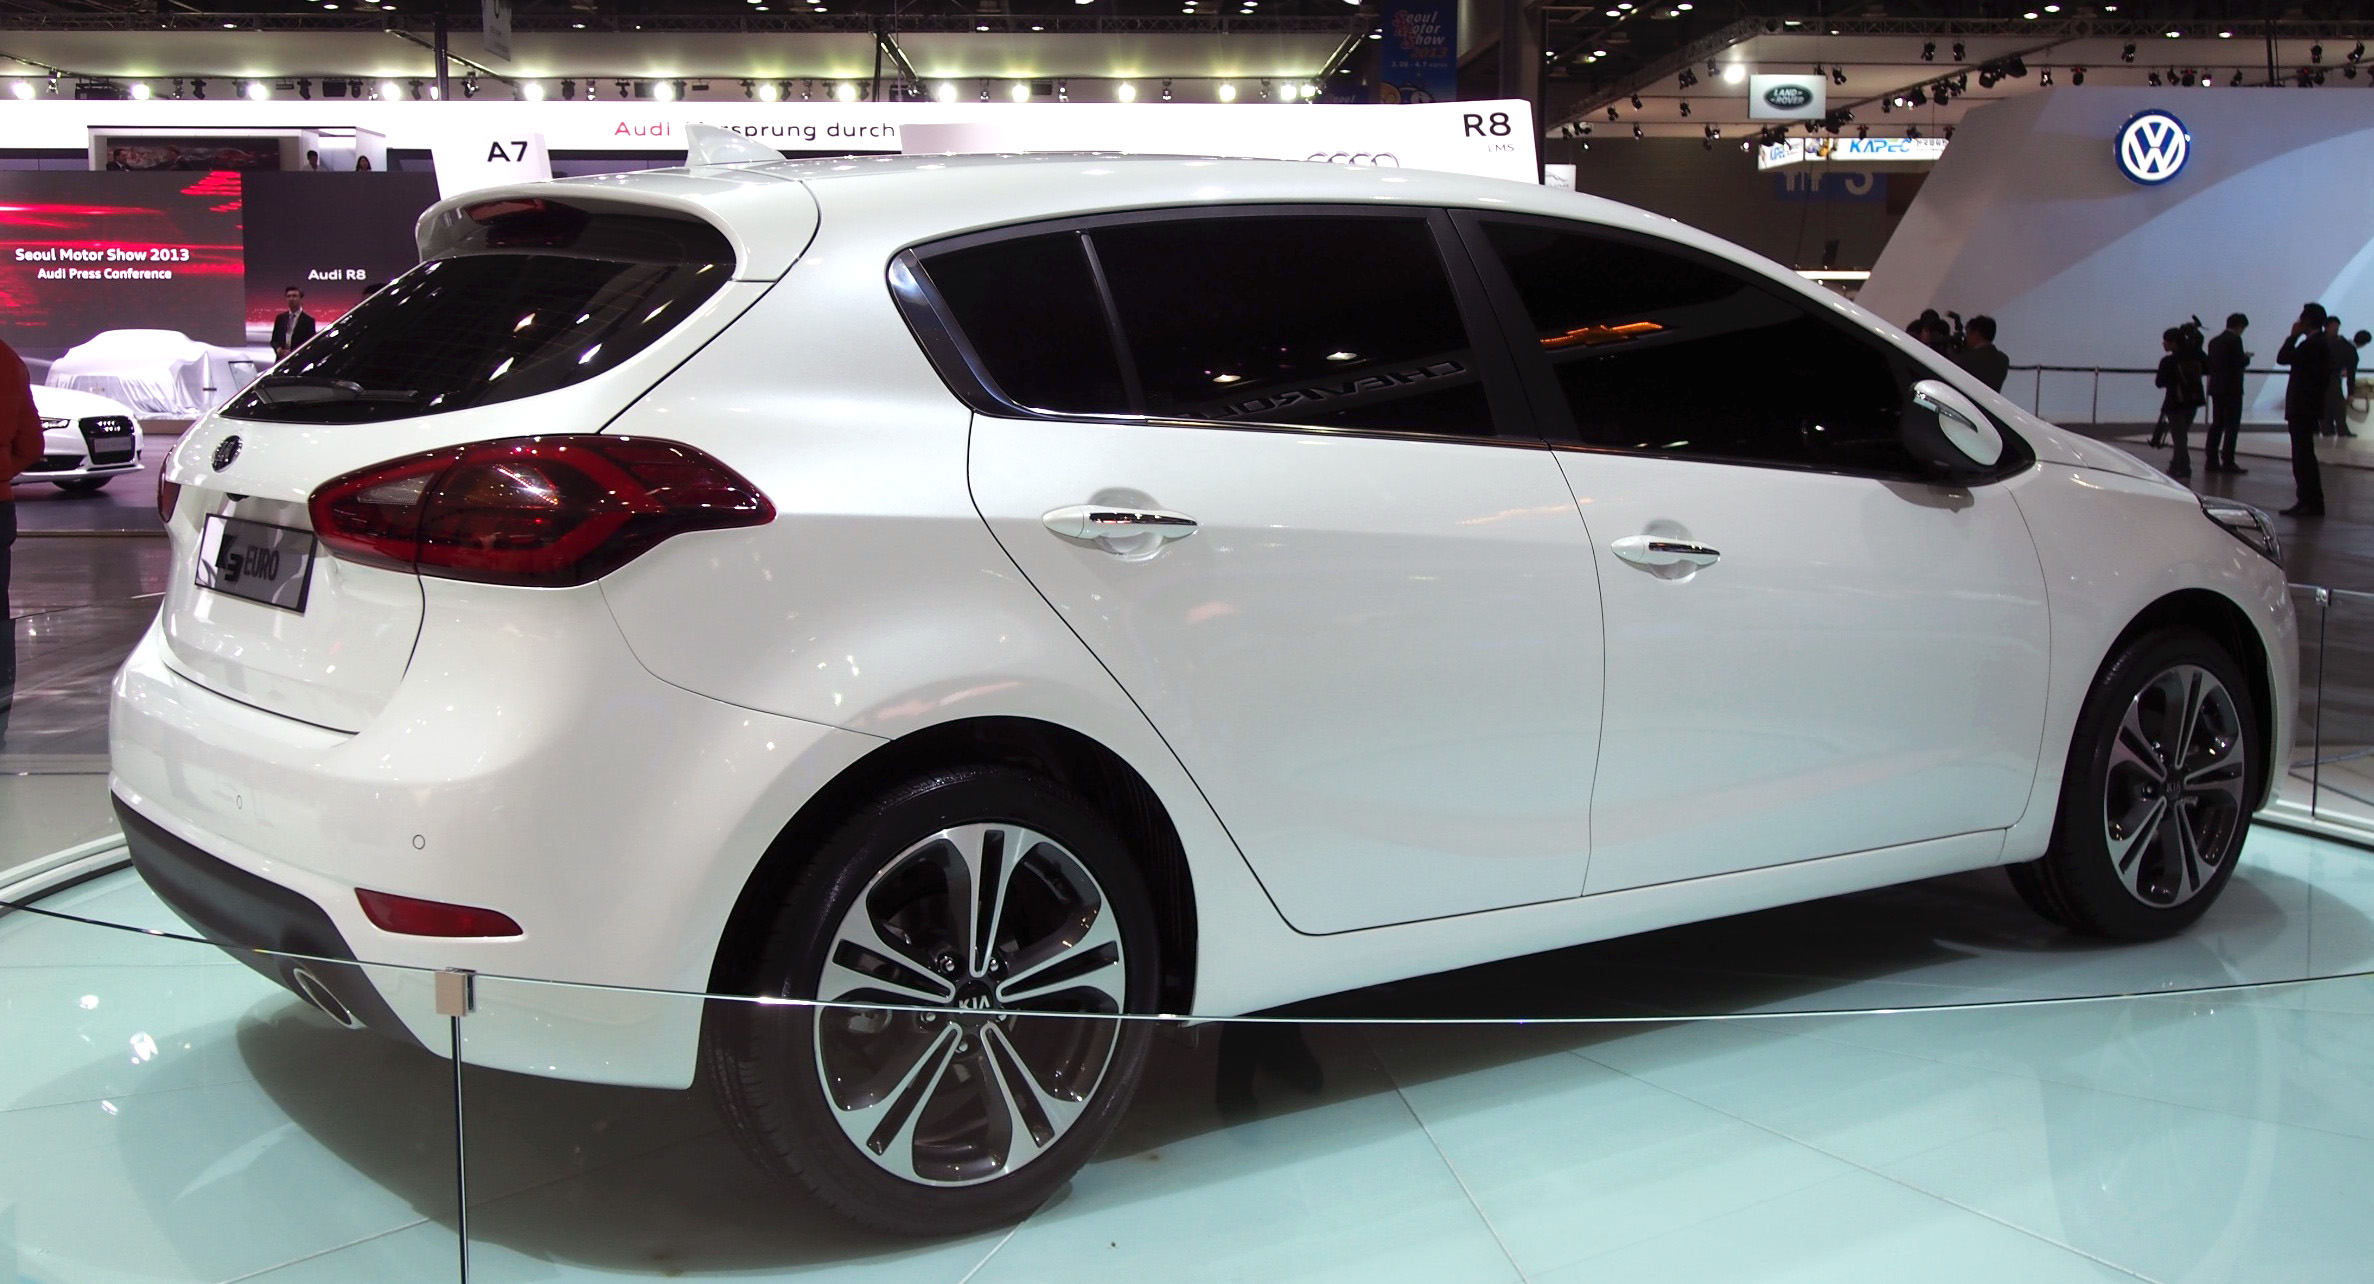 Kia Forte hatchback is called the K3 Euro in Korea